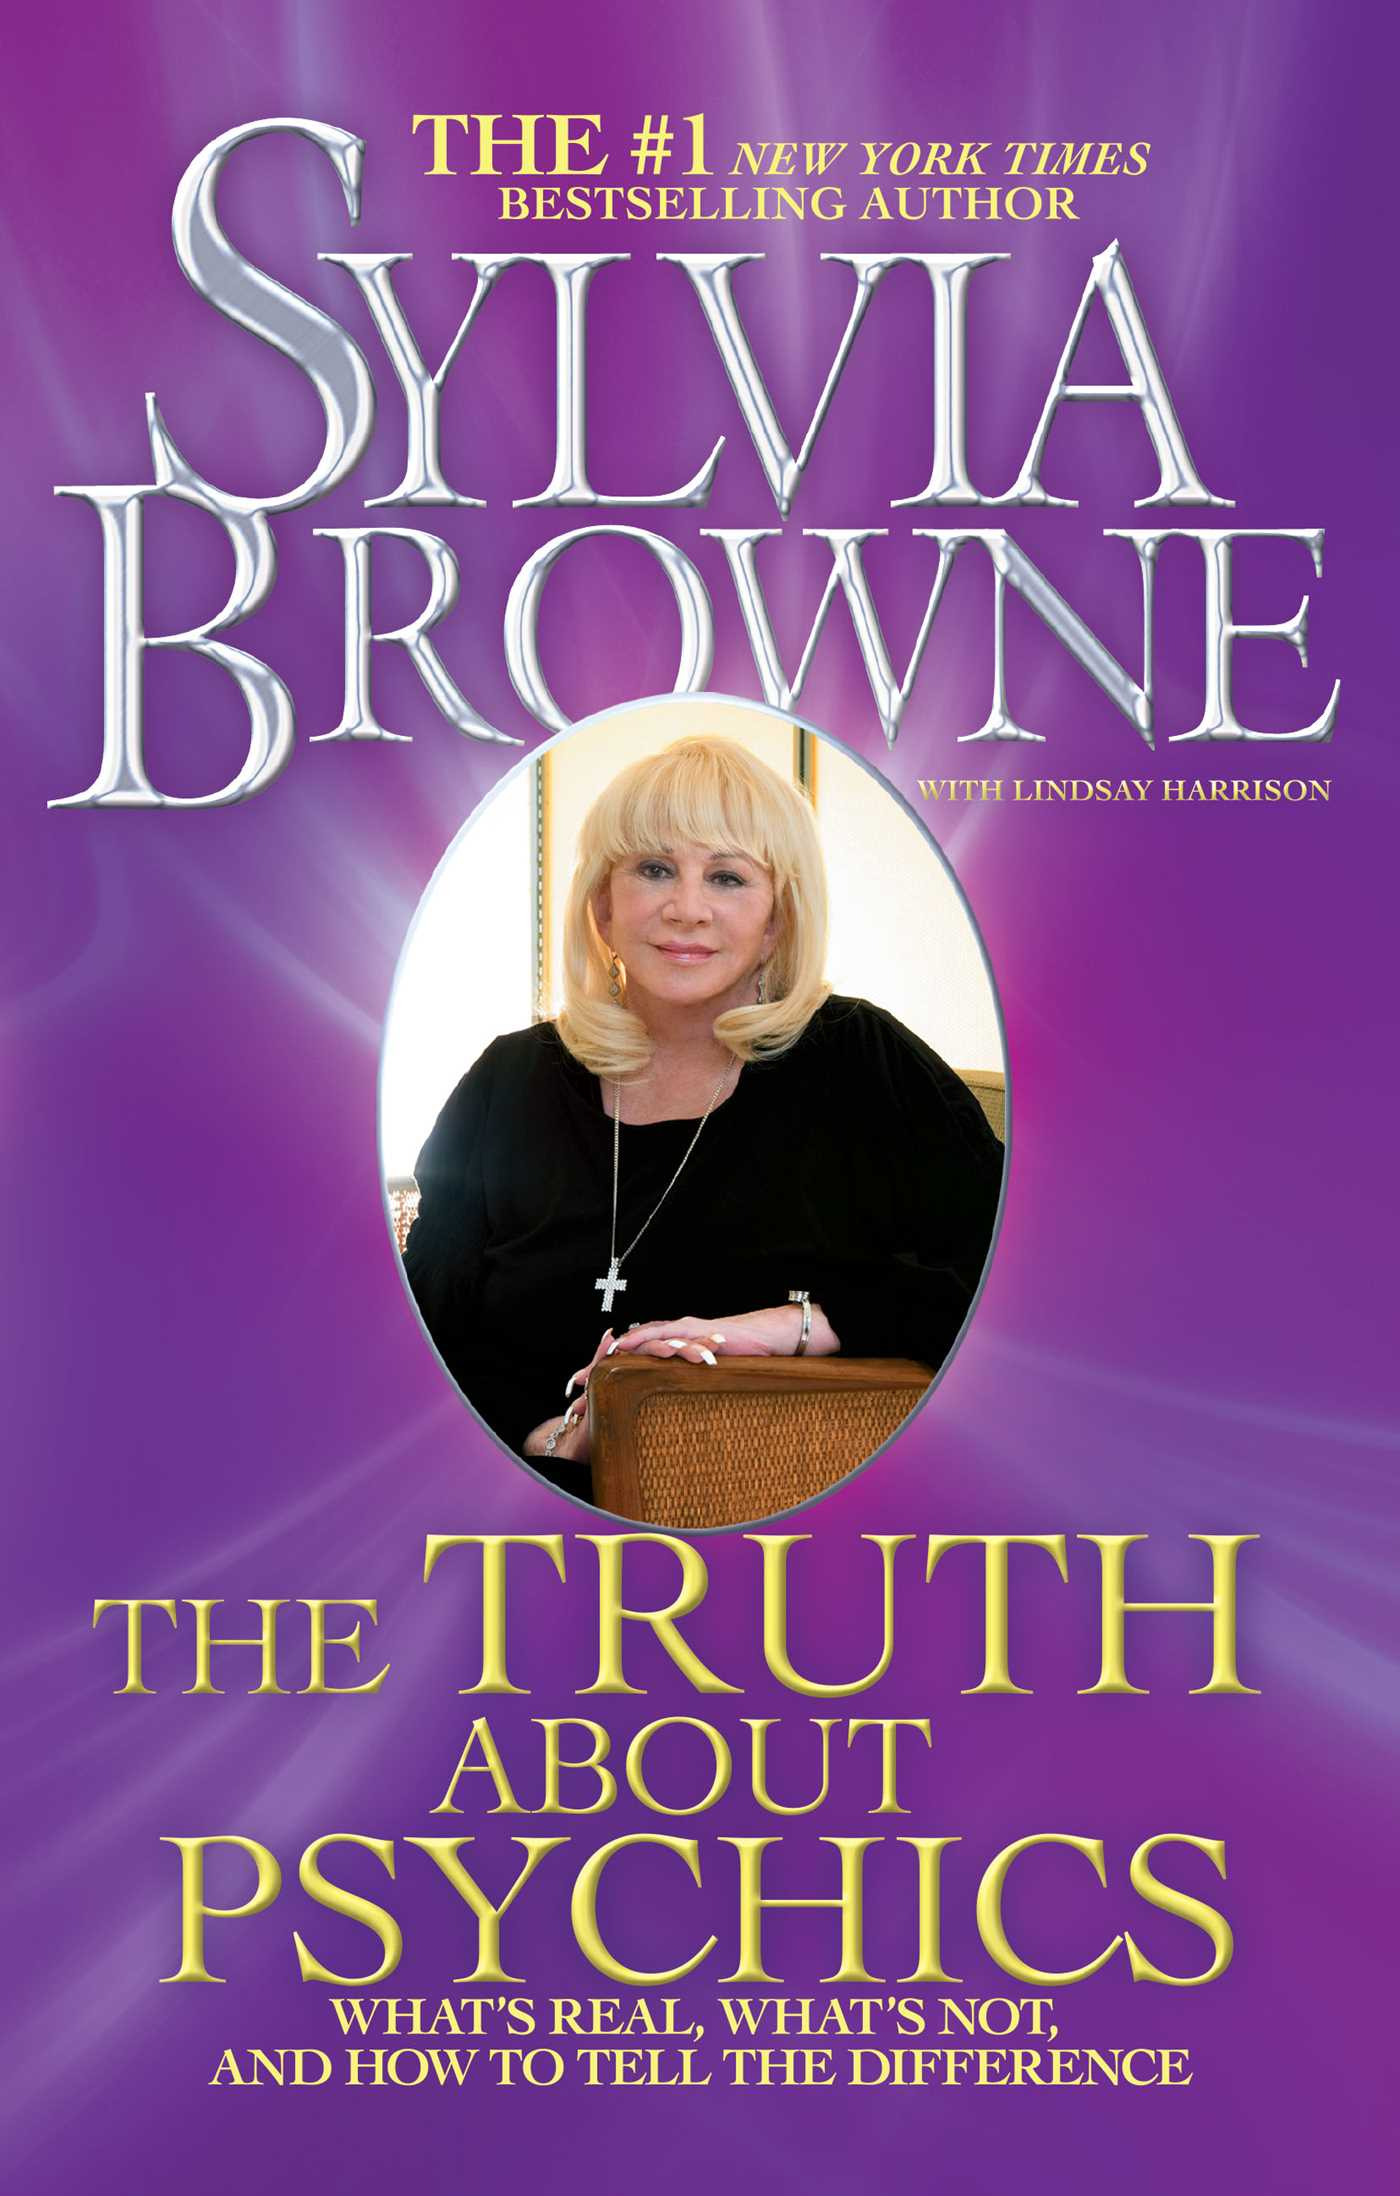 The Truth About Psychics eBook by Sylvia Browne, Lindsay Harrison